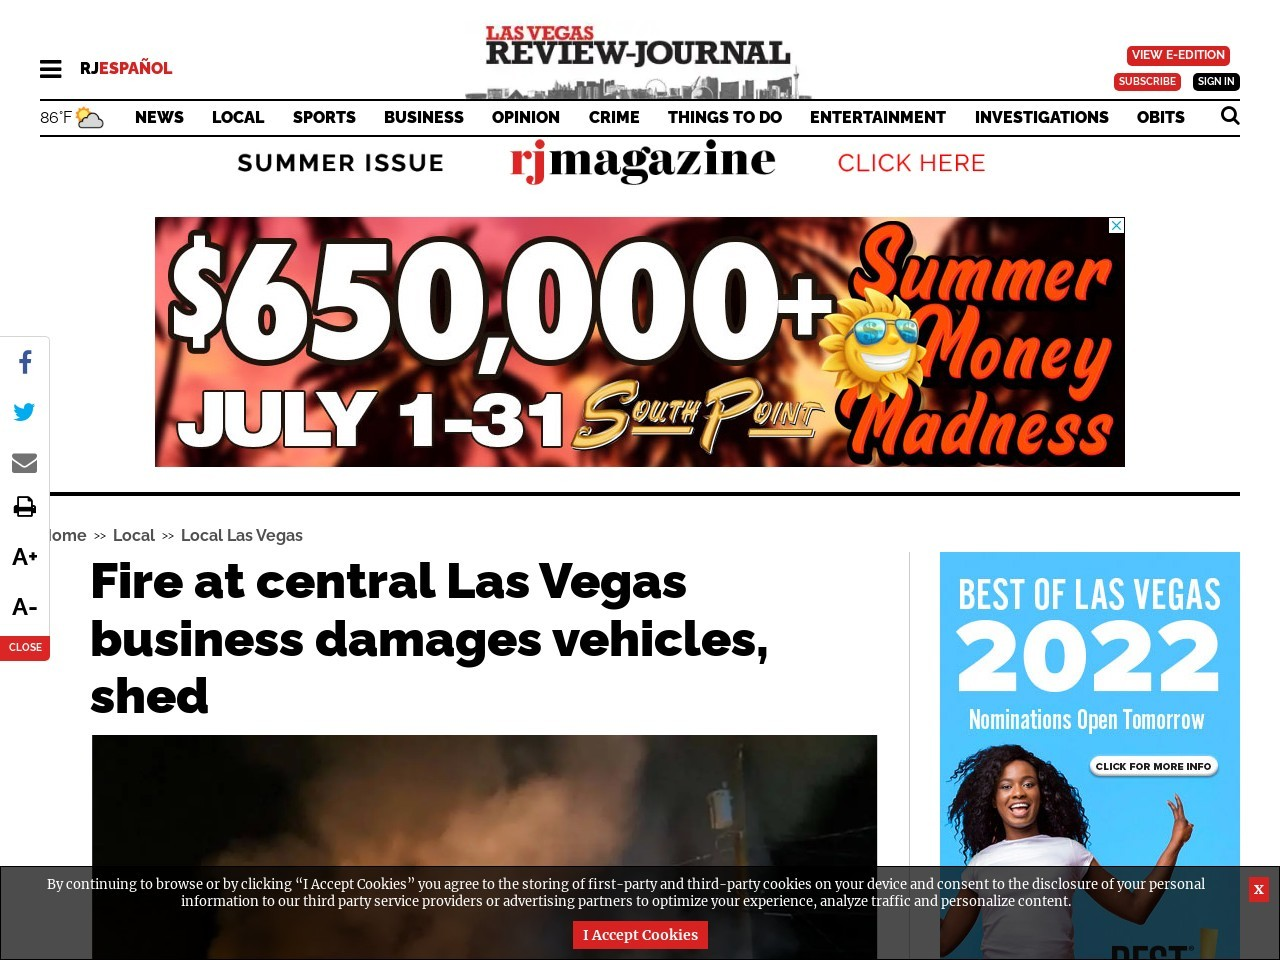 Fire at central Las Vegas business damages vehicles, shed